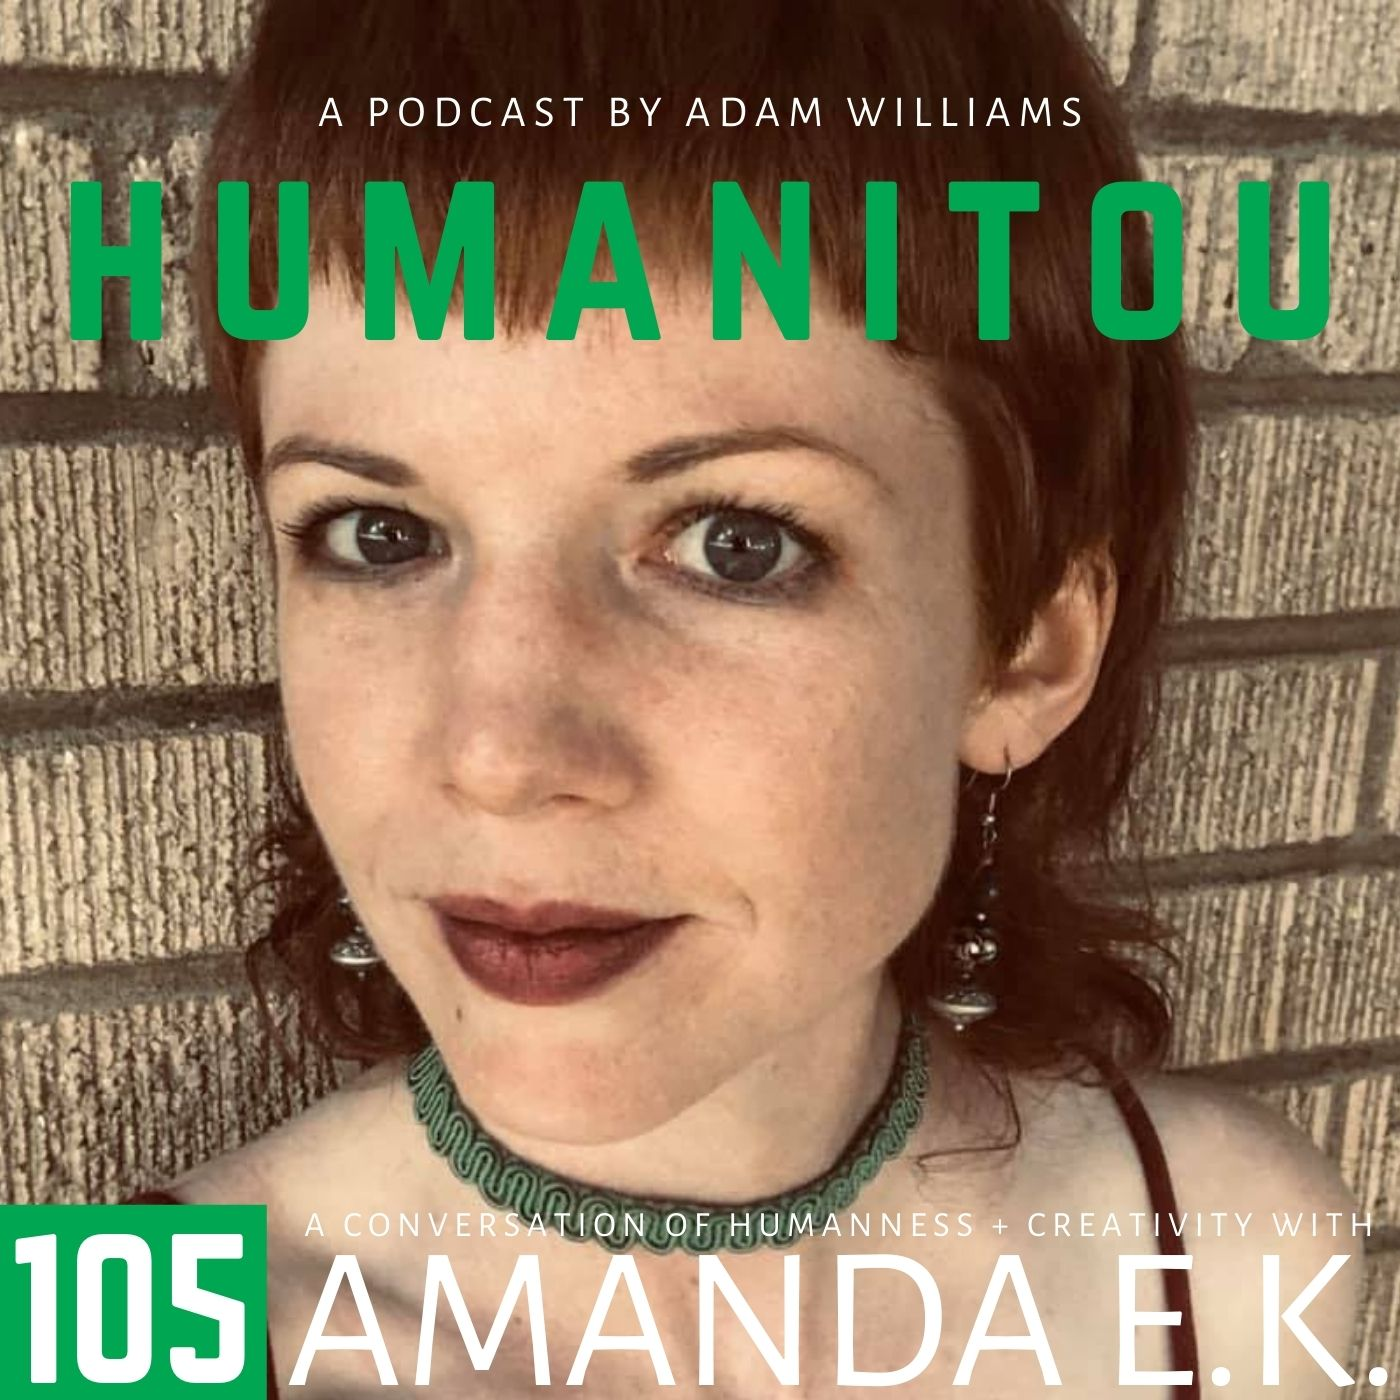 105: Amanda E.K., writer and filmmaker, on purity culture and rapture anxiety, religious trauma syndrome and coming into her own as an atheist queer polyamorous nonbinary woman